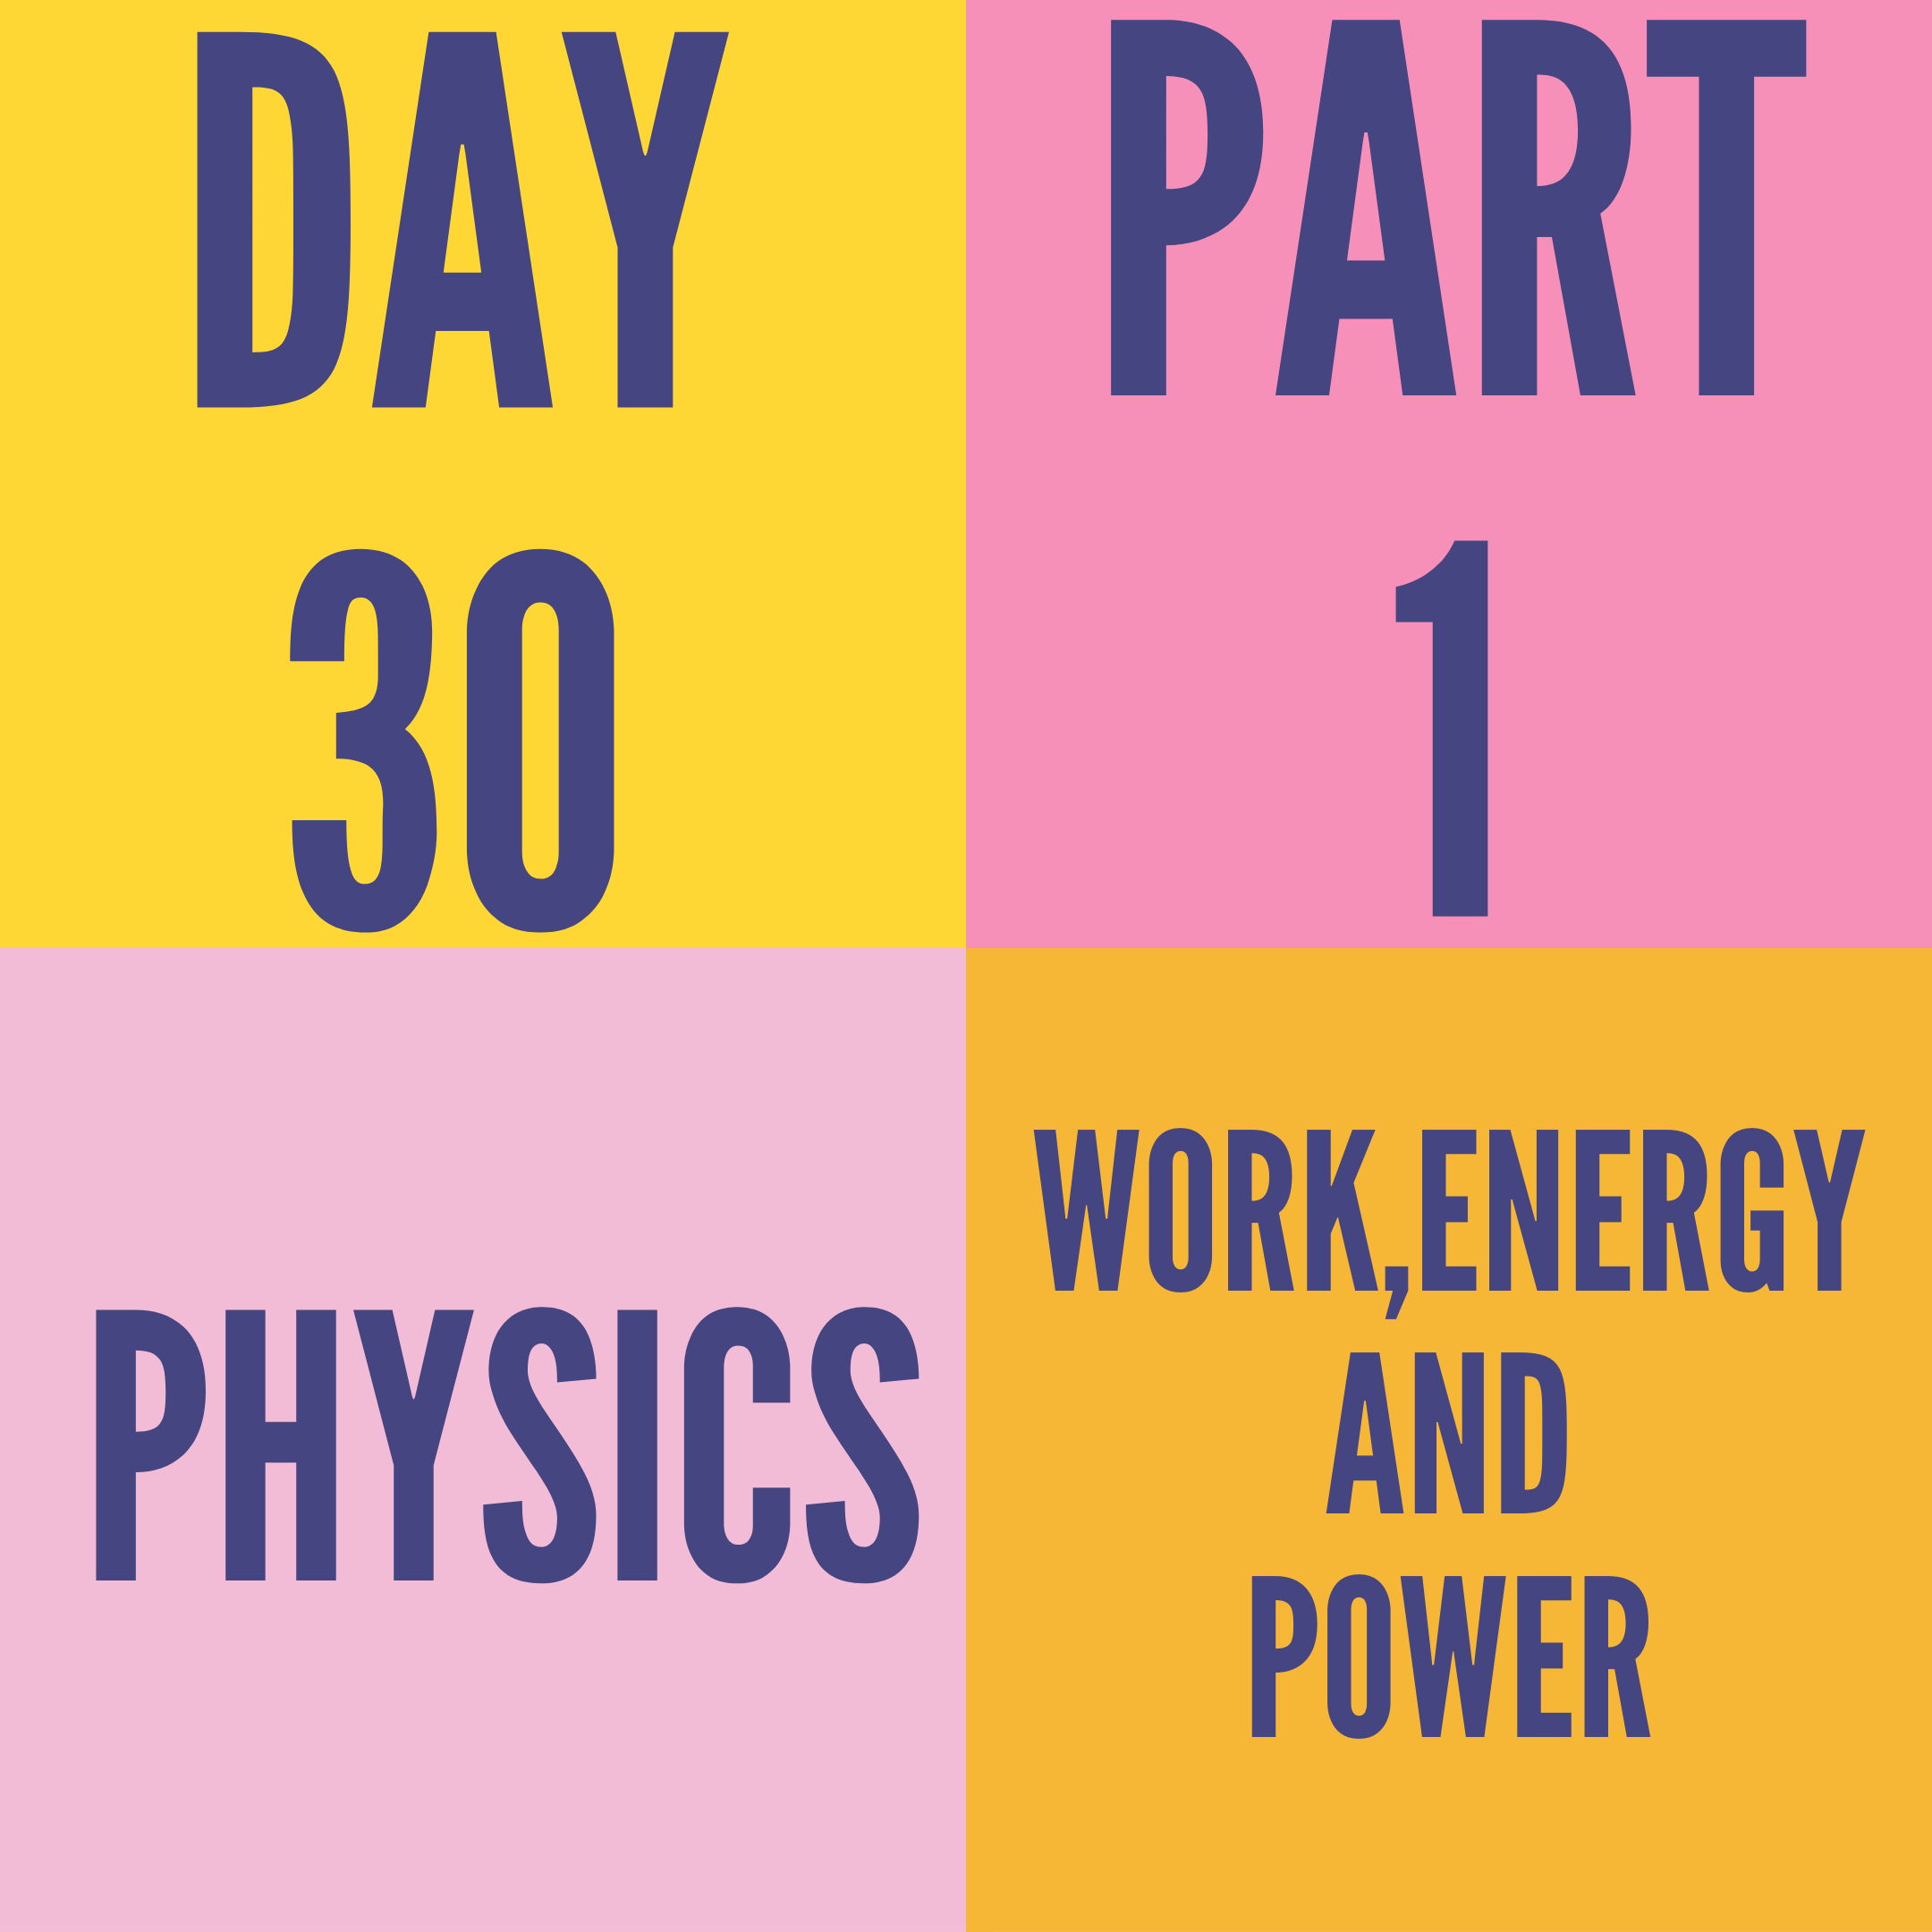 DAY-30 PART-1 WORK,ENERGY AND POWER